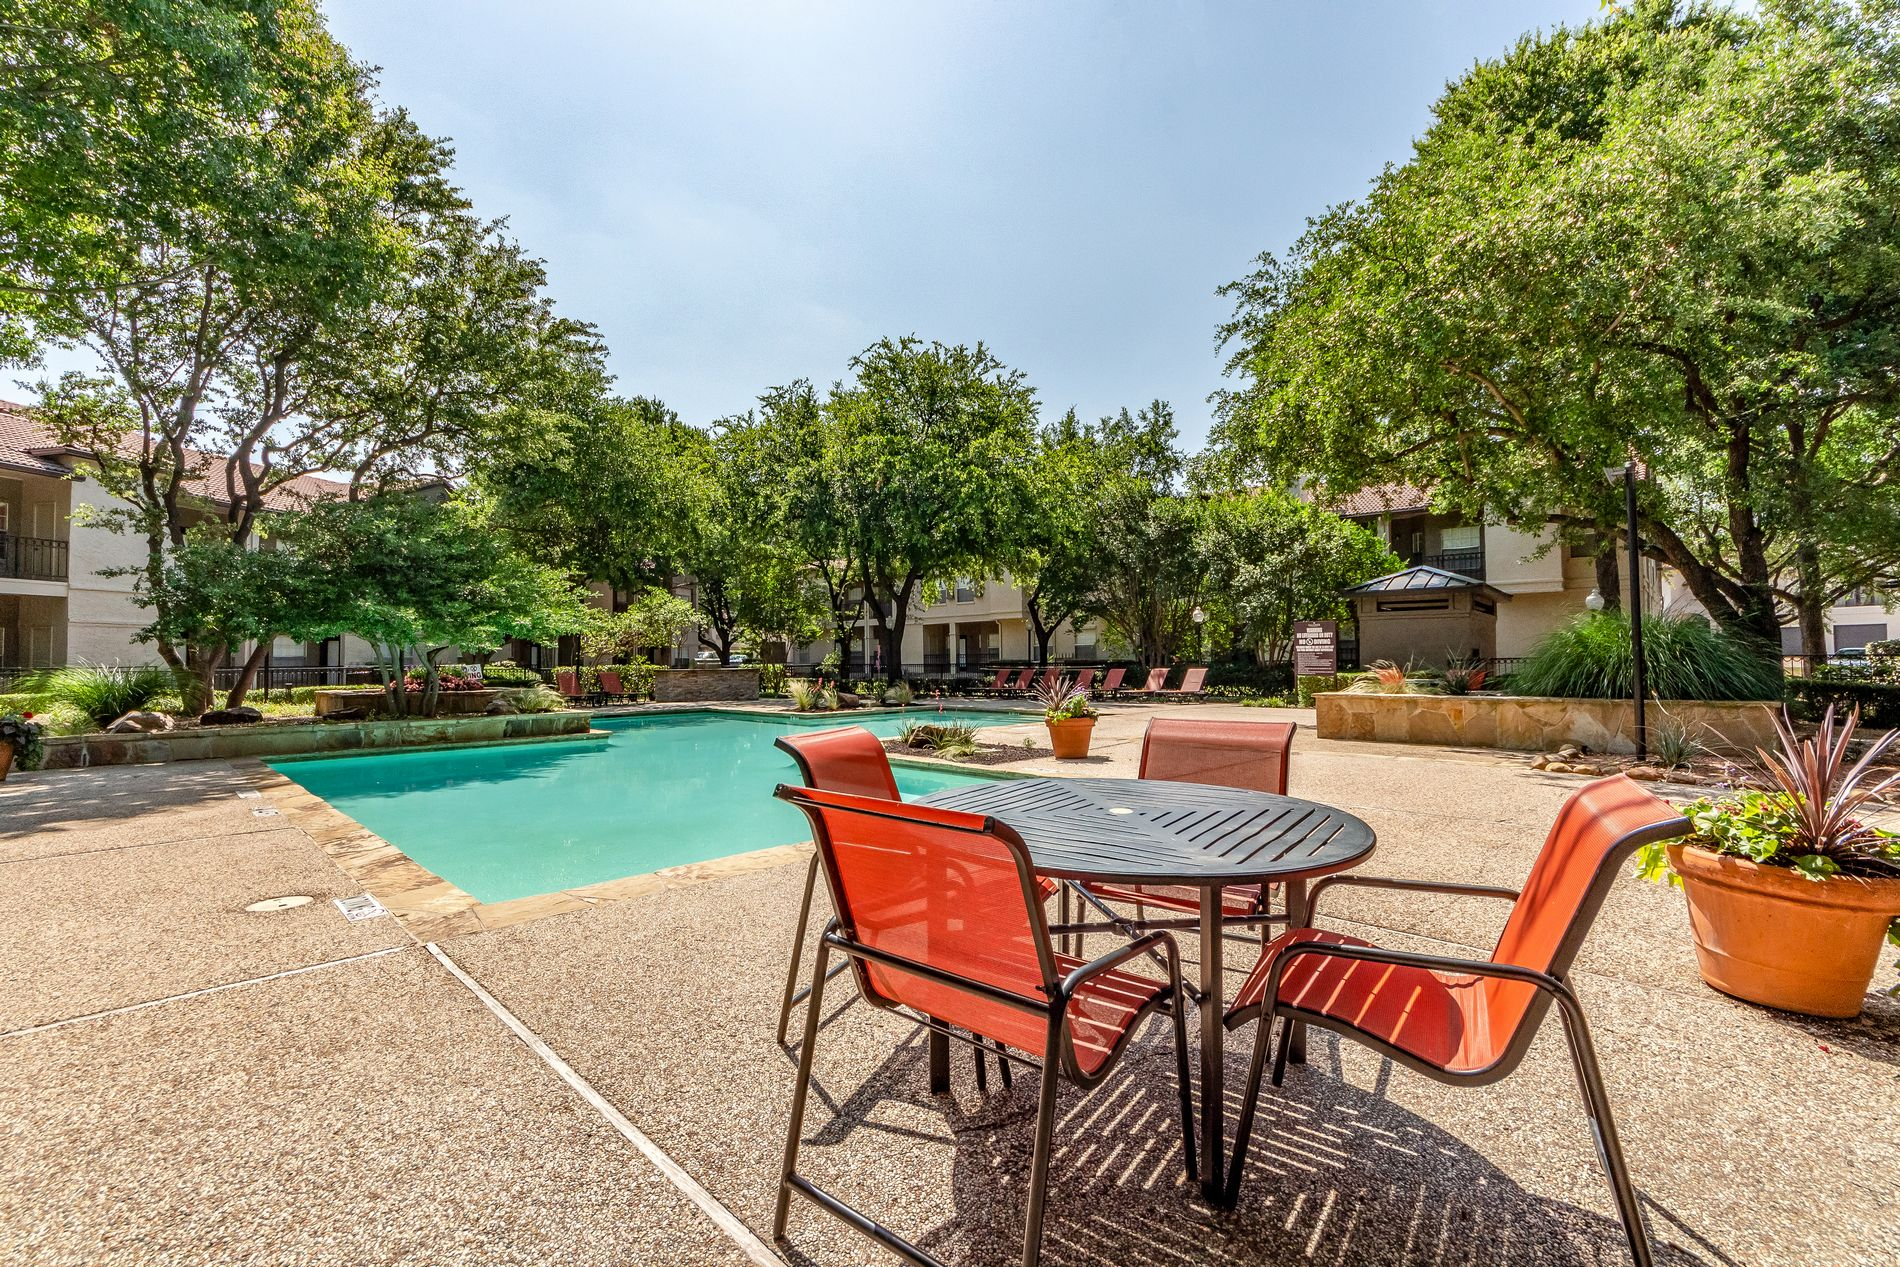 Poolside Seating at La Costa Apartments in Plano, Texas, TX